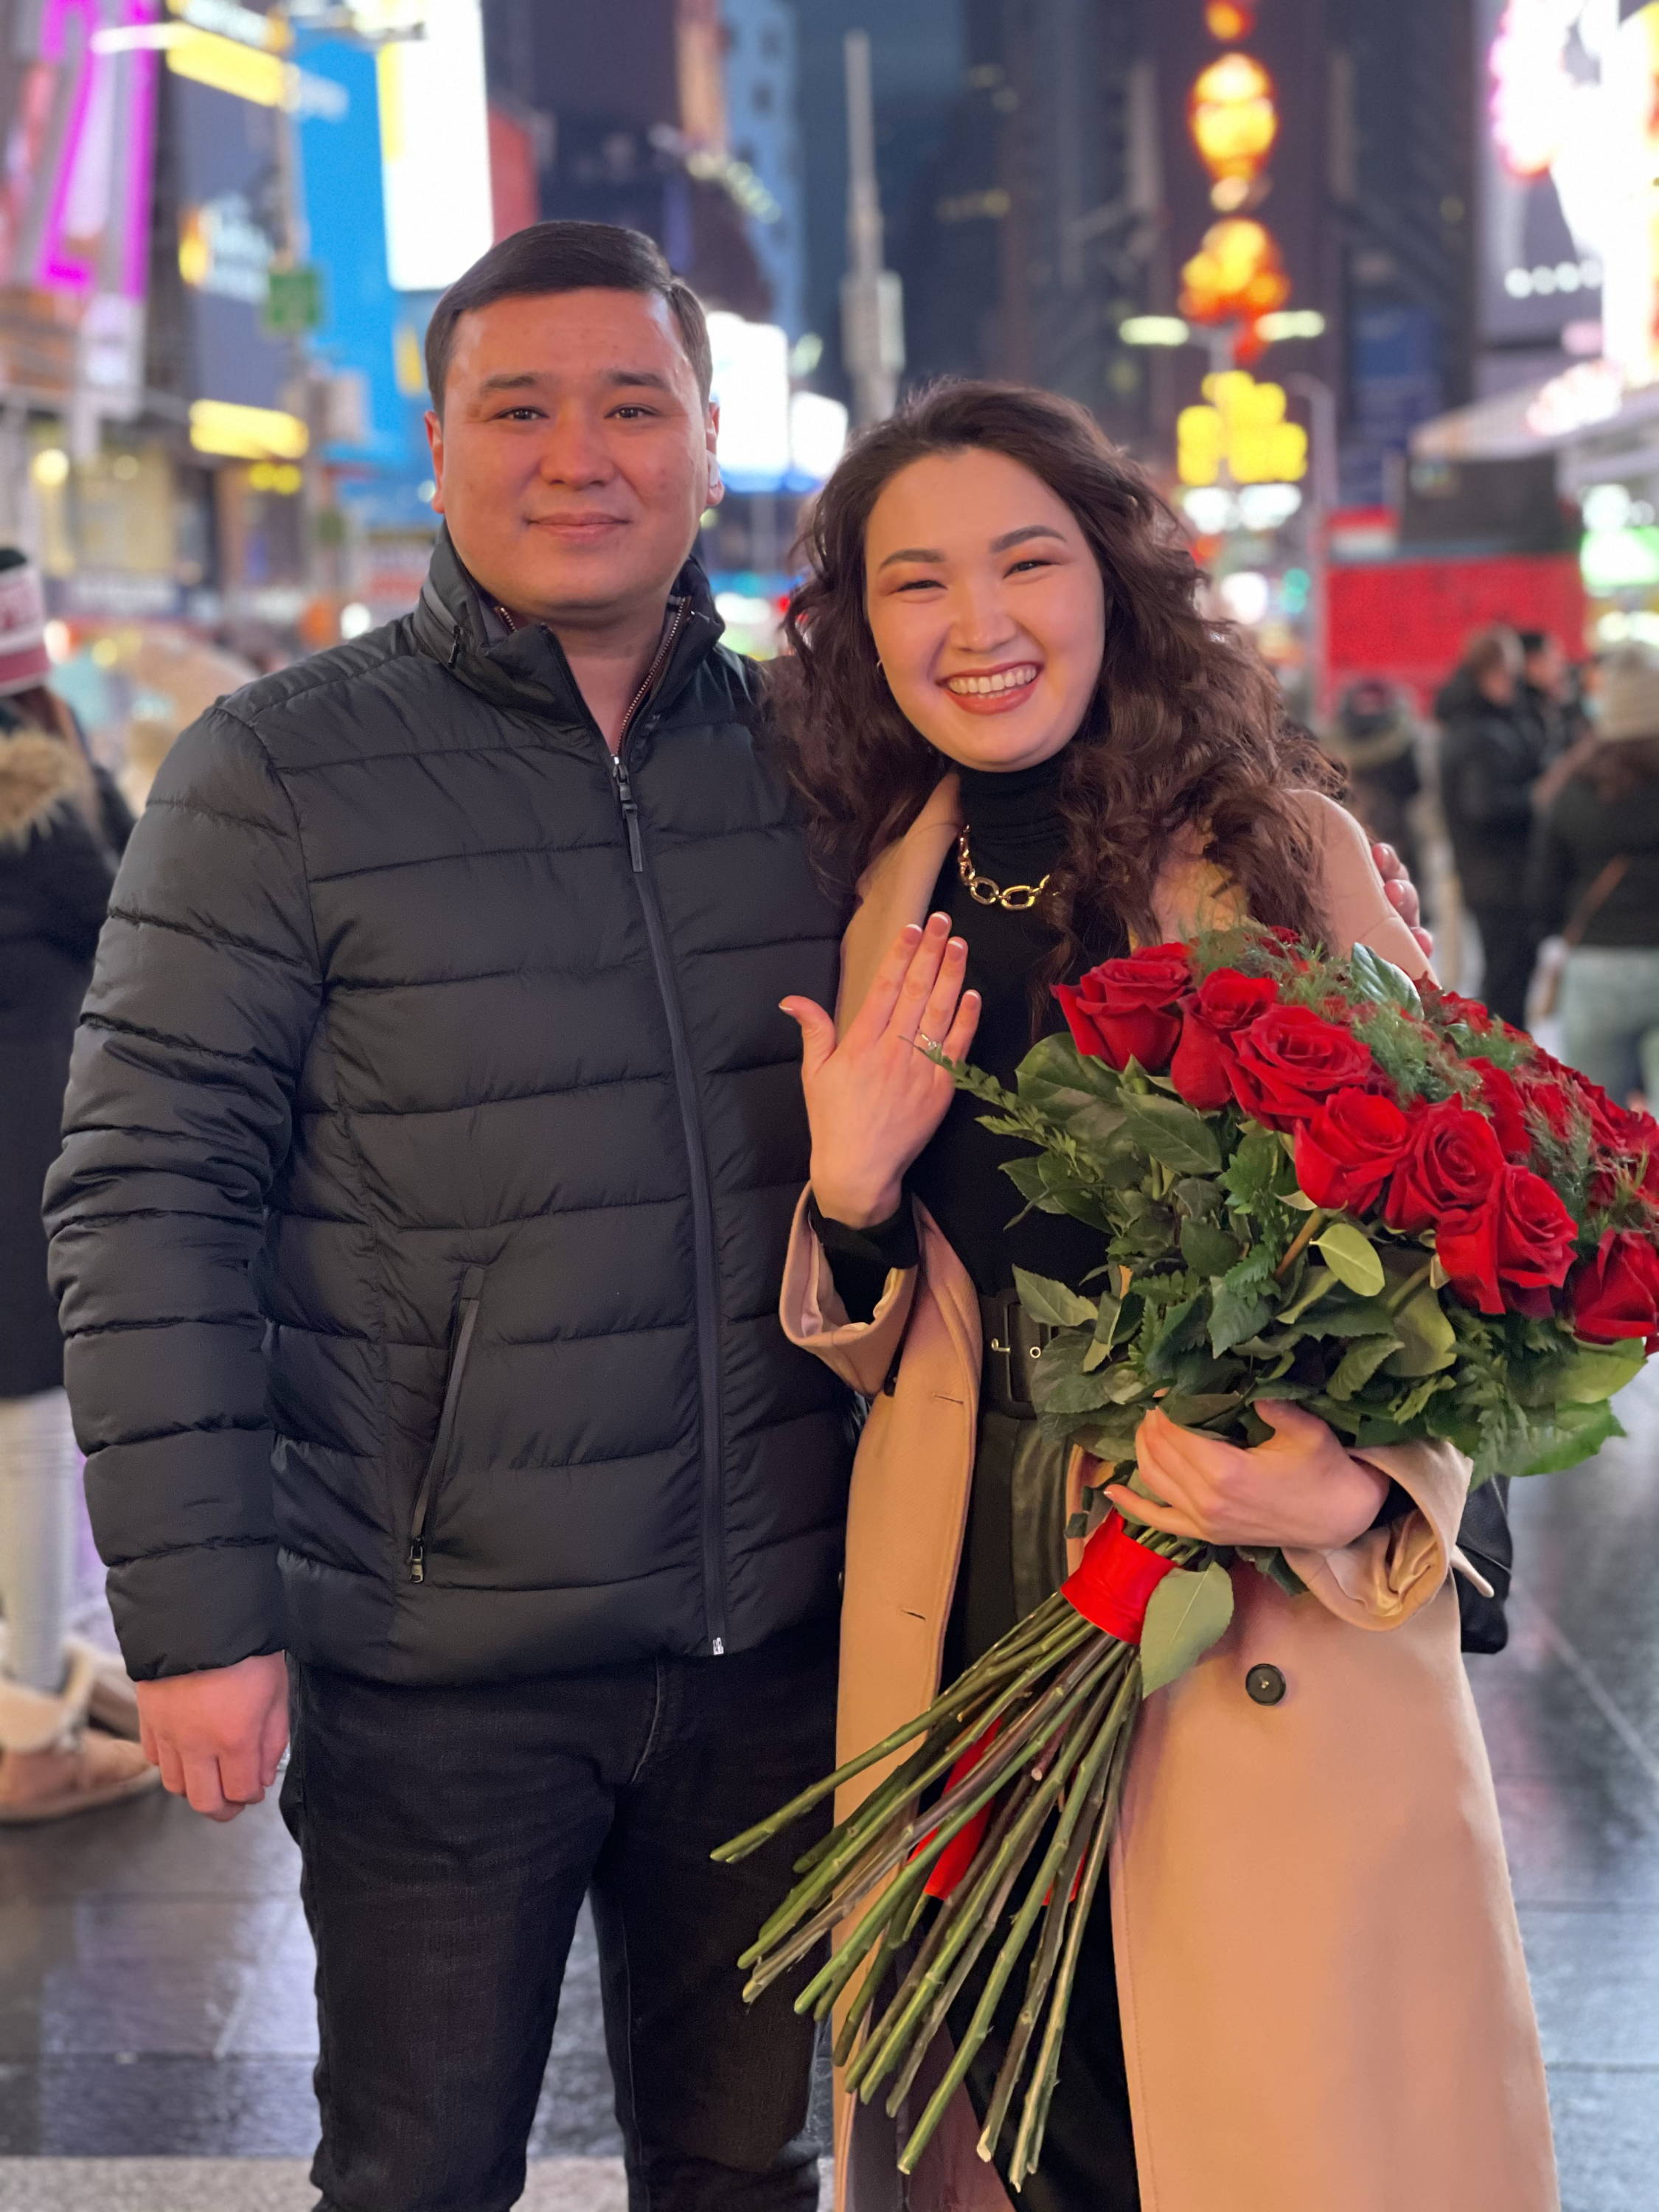 Henne Engagement Ring Couple Daniyar & Elmira Show Off Engagement Ring in Times Square